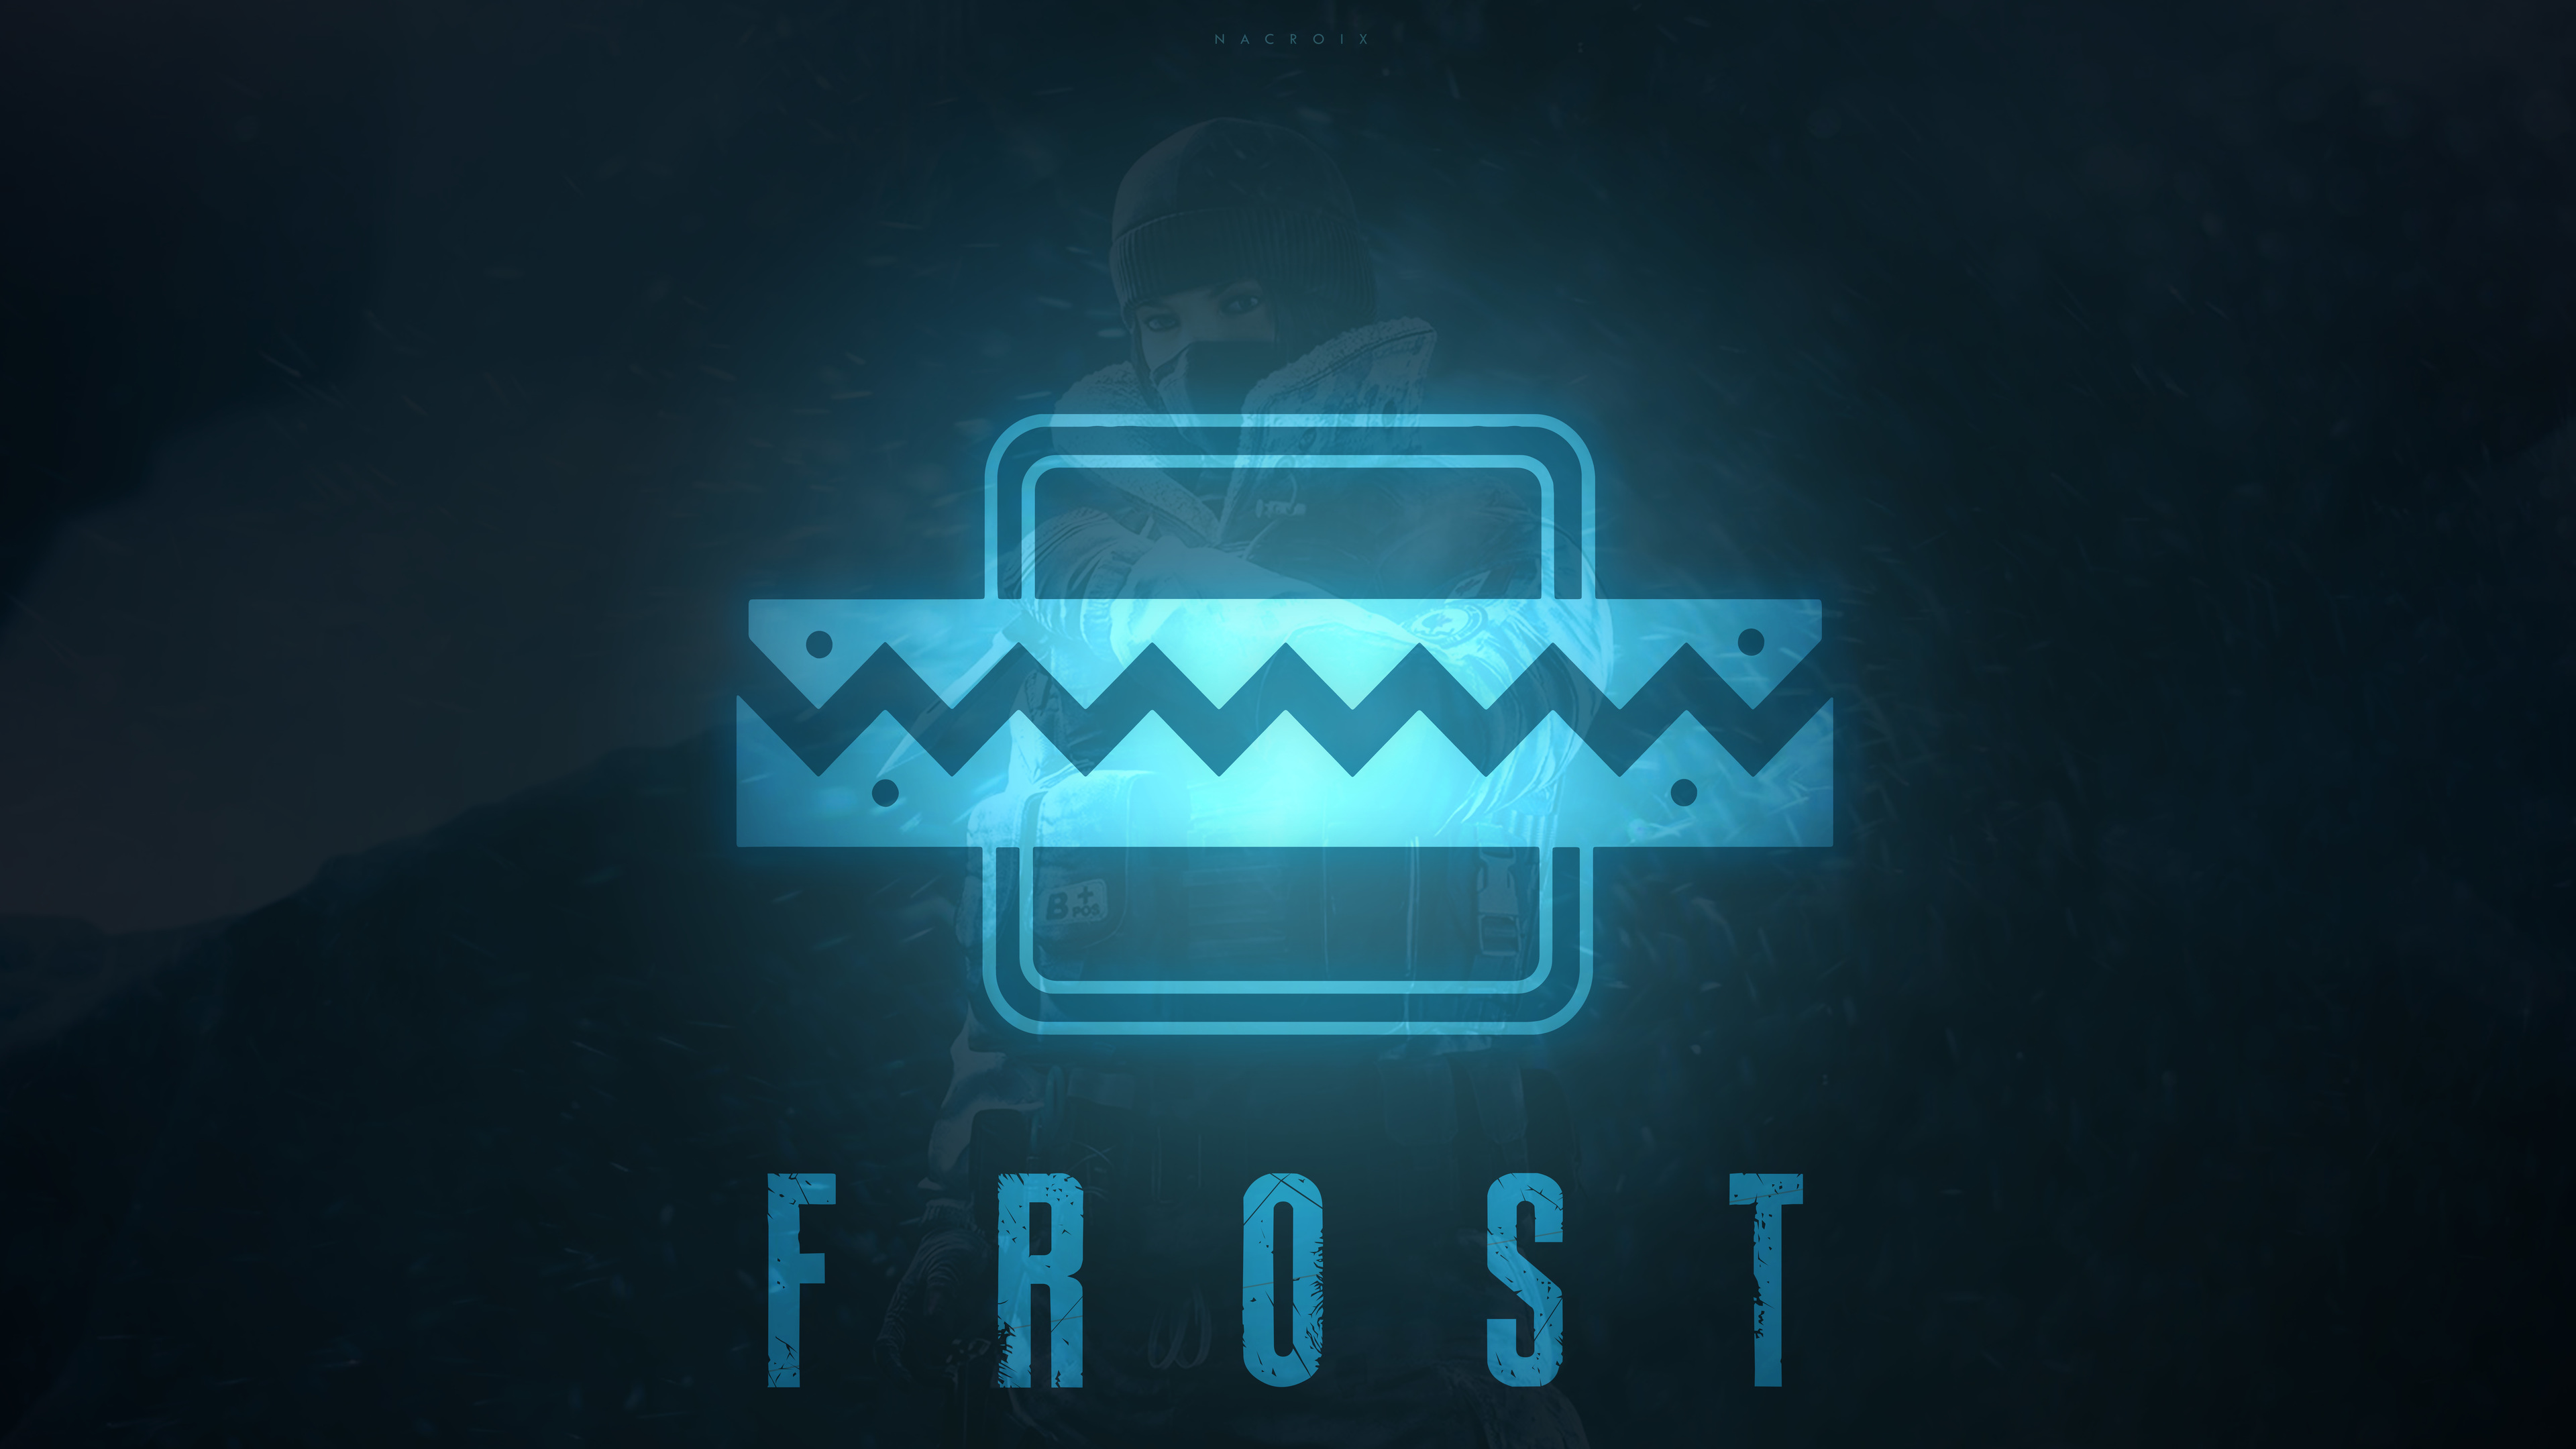 frost tom clancys rainbow six siege minimalism 12k 1537691665 - Frost Tom Clancys Rainbow Six Siege Minimalism 12k - xbox games wallpapers, tom clancys rainbow six siege wallpapers, ps games wallpapers, minimalist wallpapers, minimalism wallpapers, hd-wallpapers, games wallpapers, 8k wallpapers, 5k wallpapers, 4k-wallpapers, 12k wallpapers